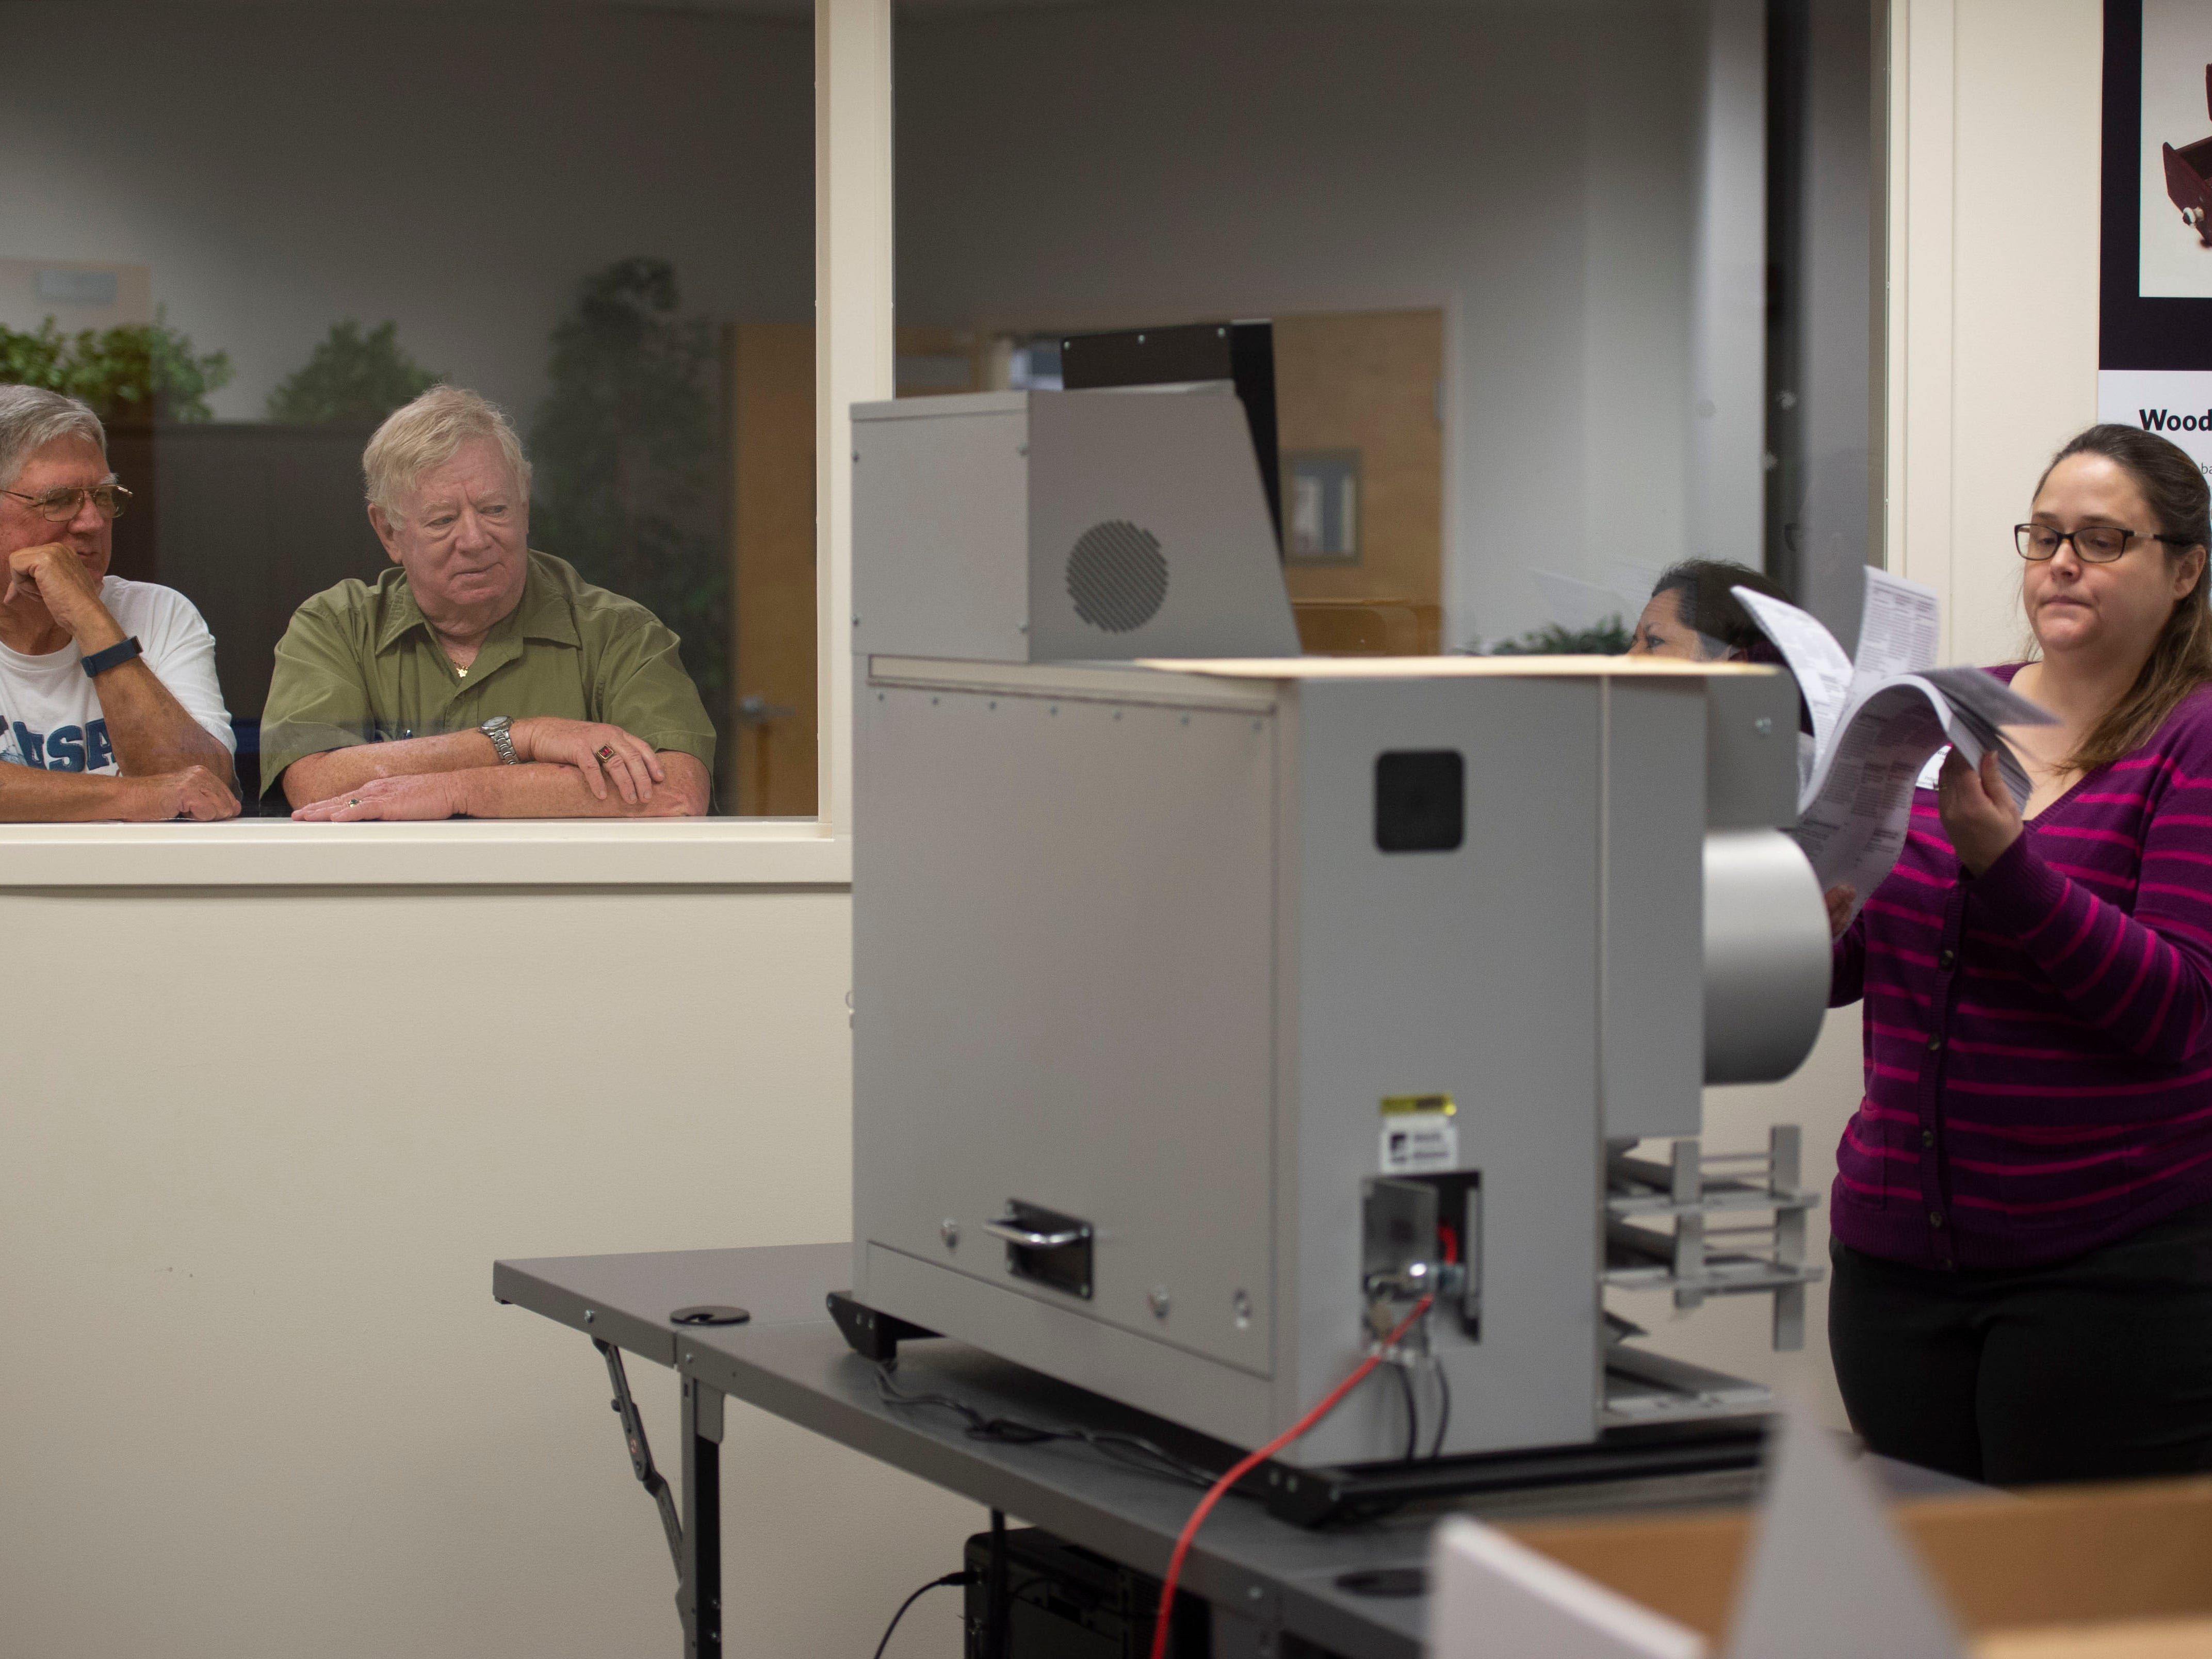 """Observers Hank Lippe (left) and Fred Grumman, both of Vero Beach, watch Maureen Houssell, chief deputy of operations for the Indian River County Supervisor of Elections, during a recount of 74,992 ballots on Nov. 11, 2018 at the county's elections office in Indian River County. Secretary of State Ken Detzner ordered recounts in the elections for governor, U.S. Senator and agriculture commissioner because the results provided to the state from the margin from all three races were less than one-half of one percent. """"That's a wonderful way to spend a Sunday,"""" said Grumman, laughing. """"You do your civic duty. It sound cliche, but if you believe in the process and they need you, you do it."""""""